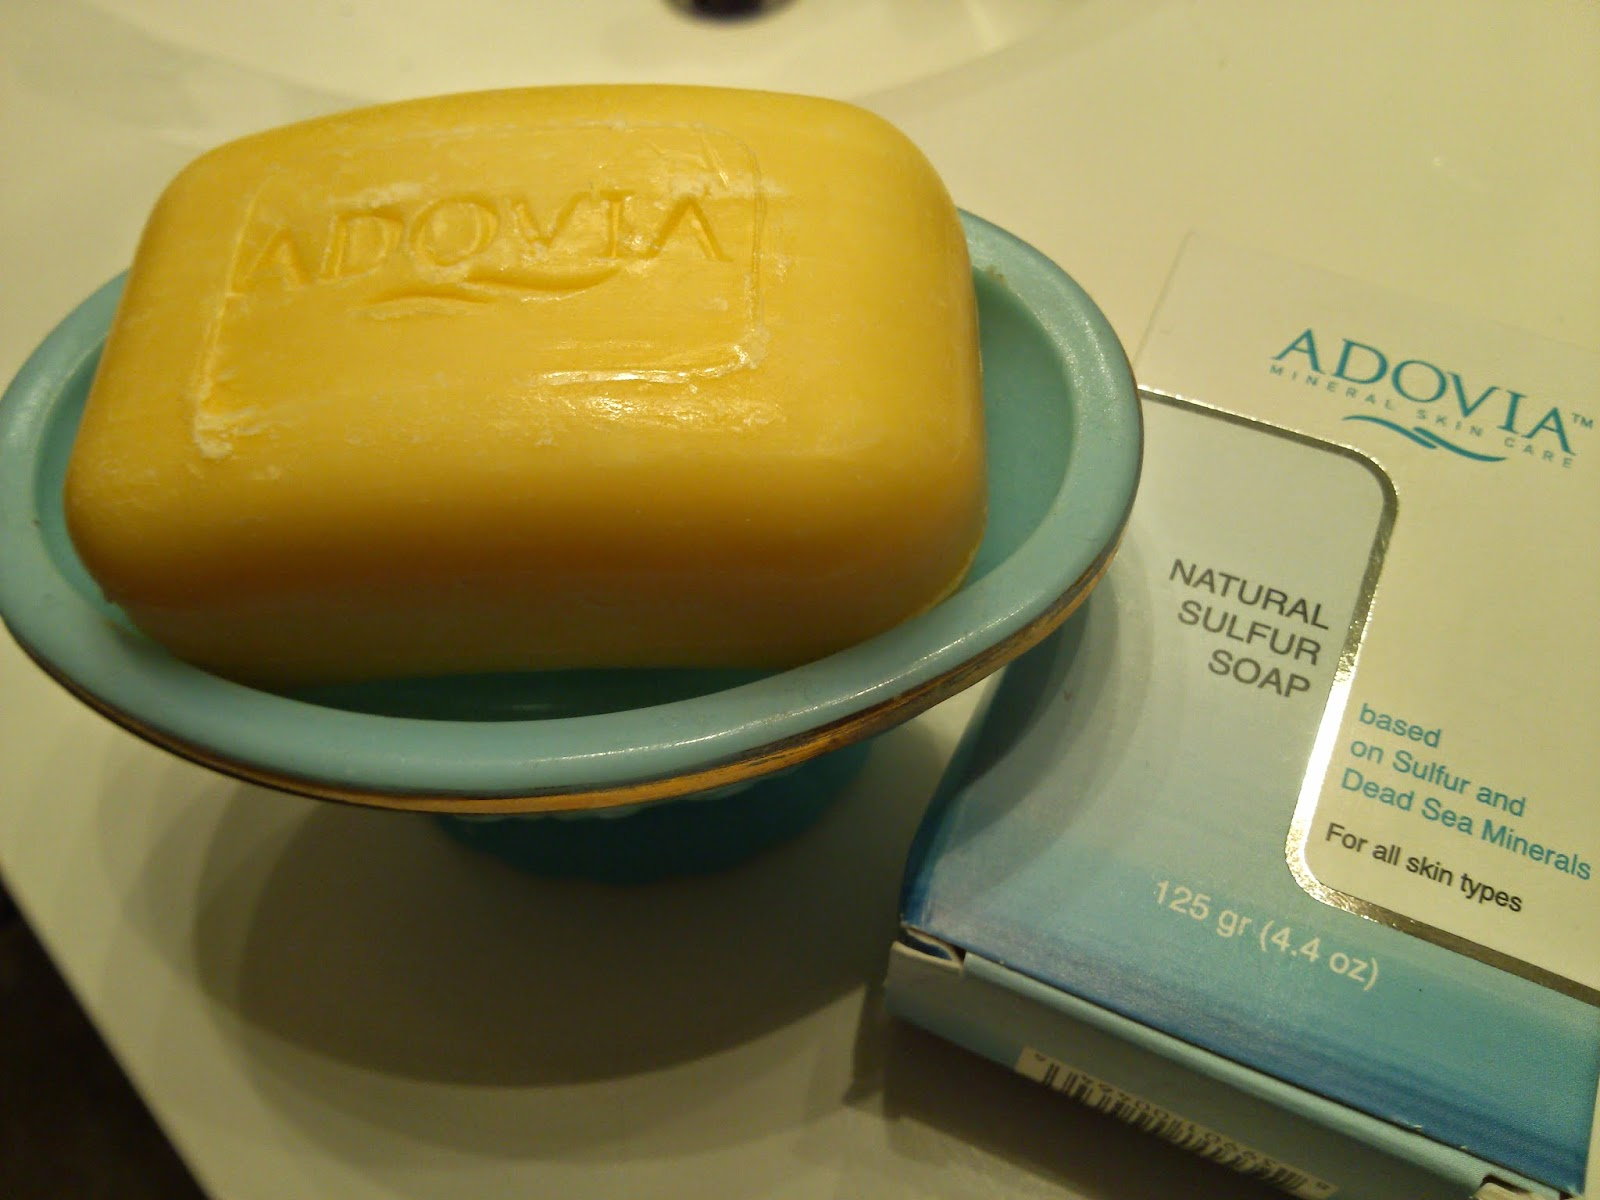 Adovia Sulfur Soap Review